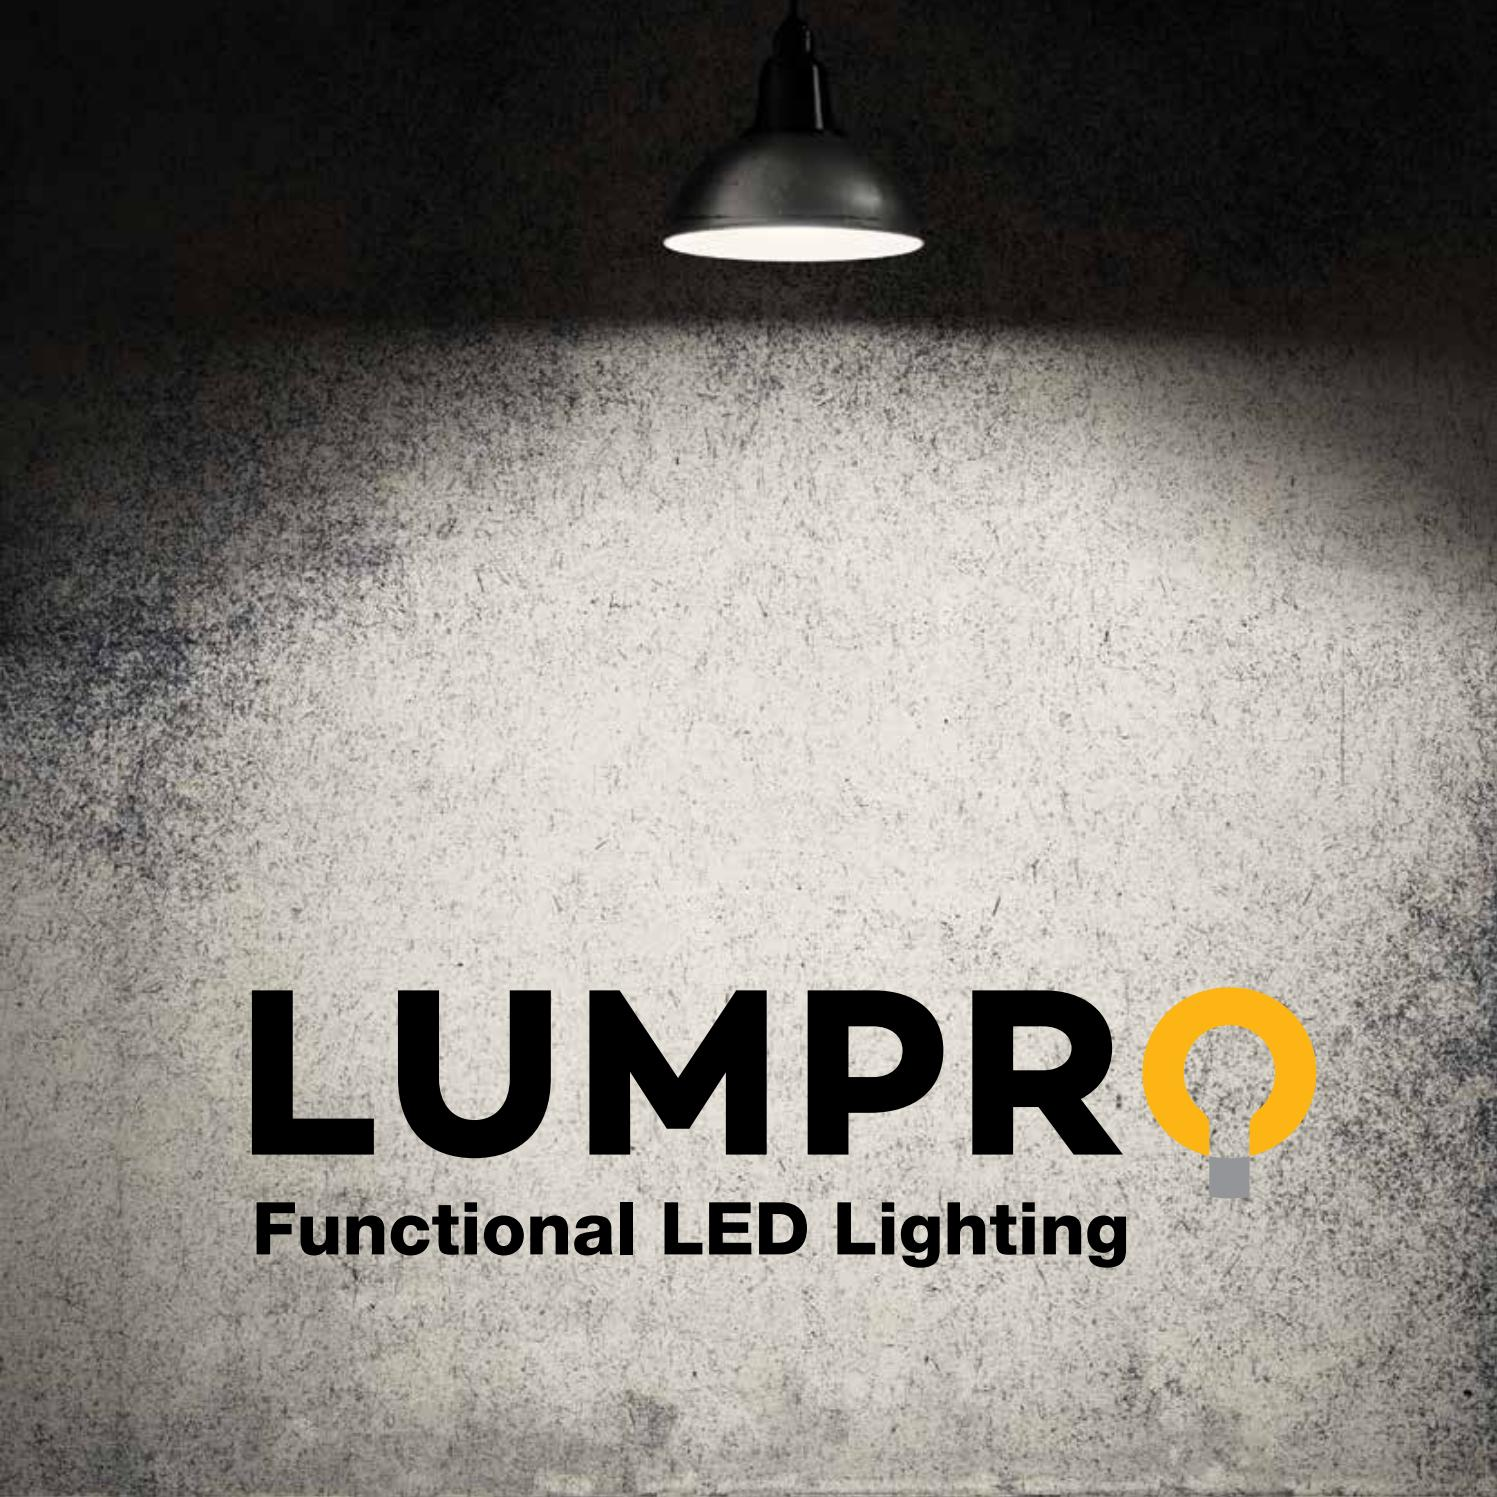 Norme Eclairage Exterieur Erp Lumpro Led Lighting Catalogue By Project Zero Issuu